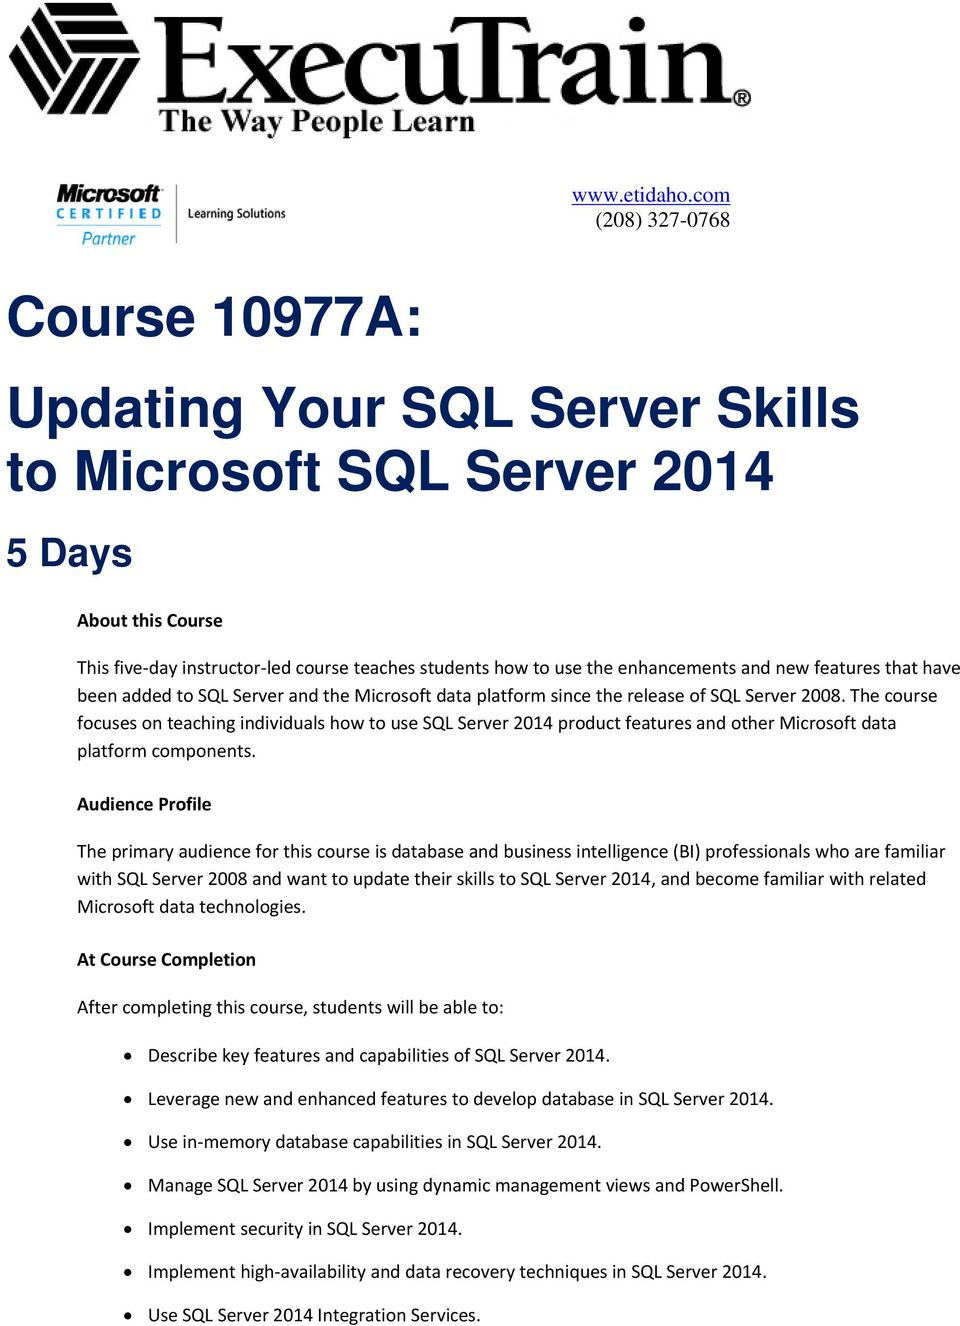 enhancements and new features that have been added to SQL Server and the Microsoft data platform since the release of SQL Server 2008.